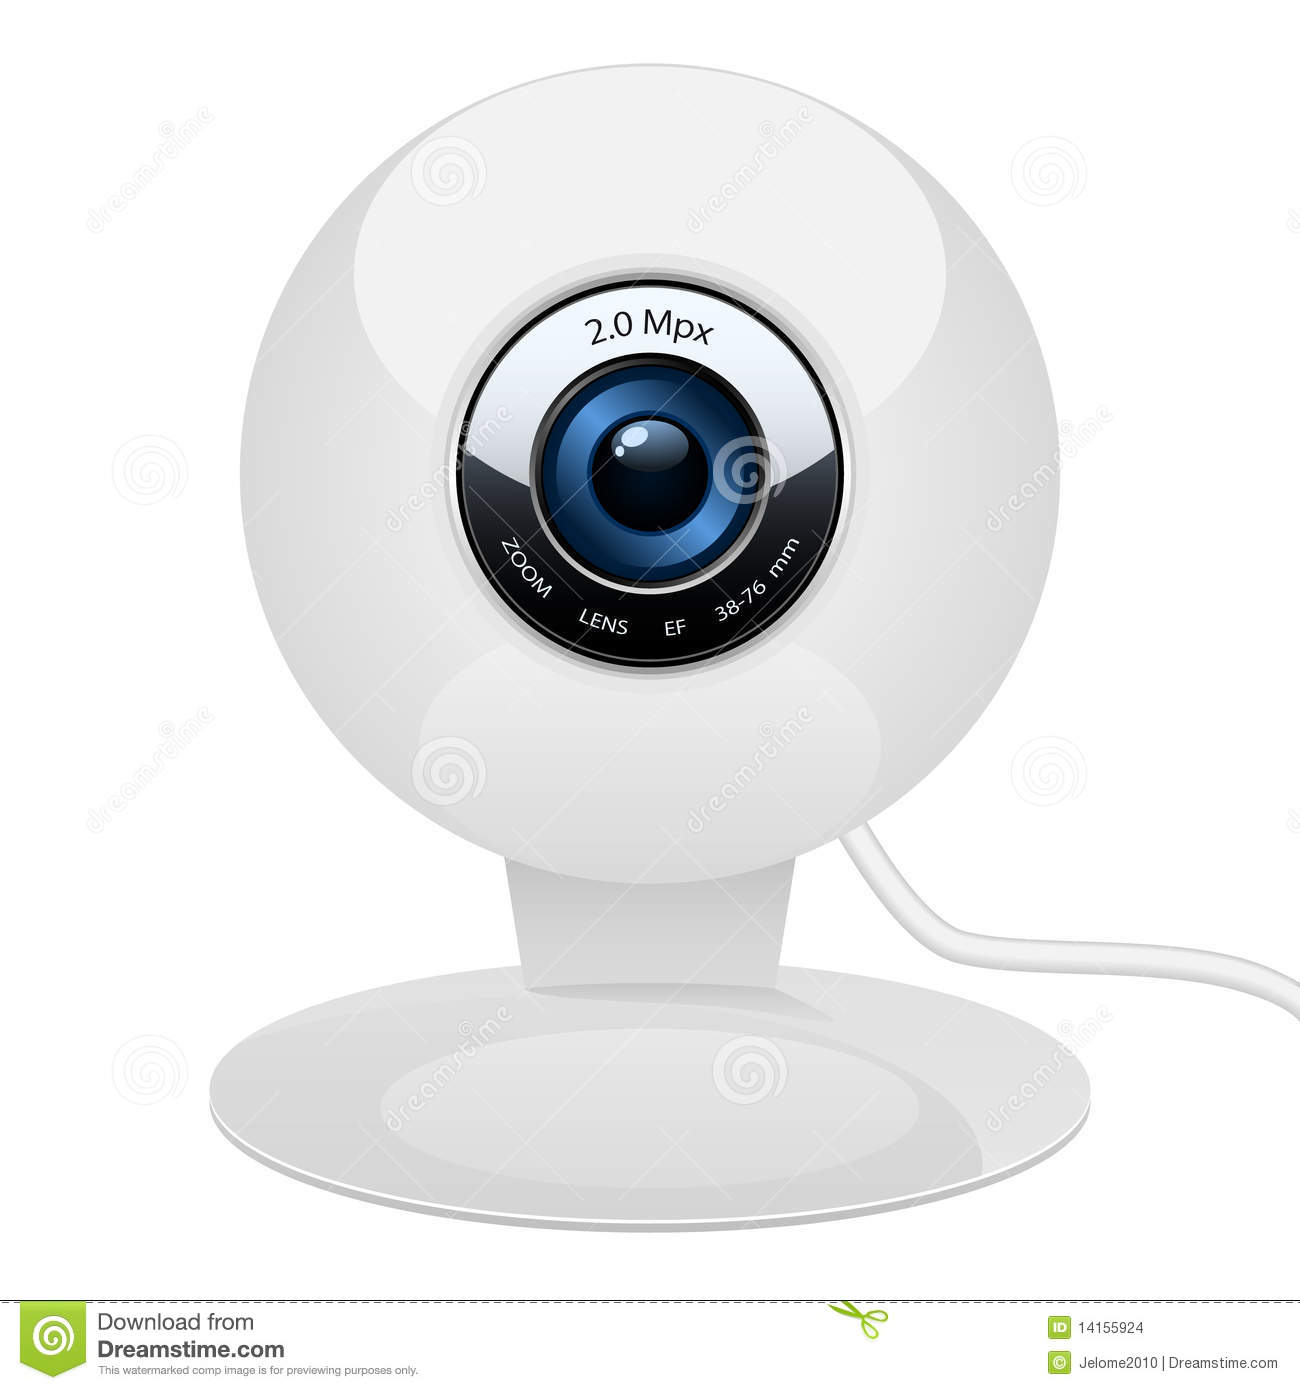 Vector Web Camera Stock Images - Image: 14155924: www.dreamstime.com/stock-images-vector-web-camera-image14155924